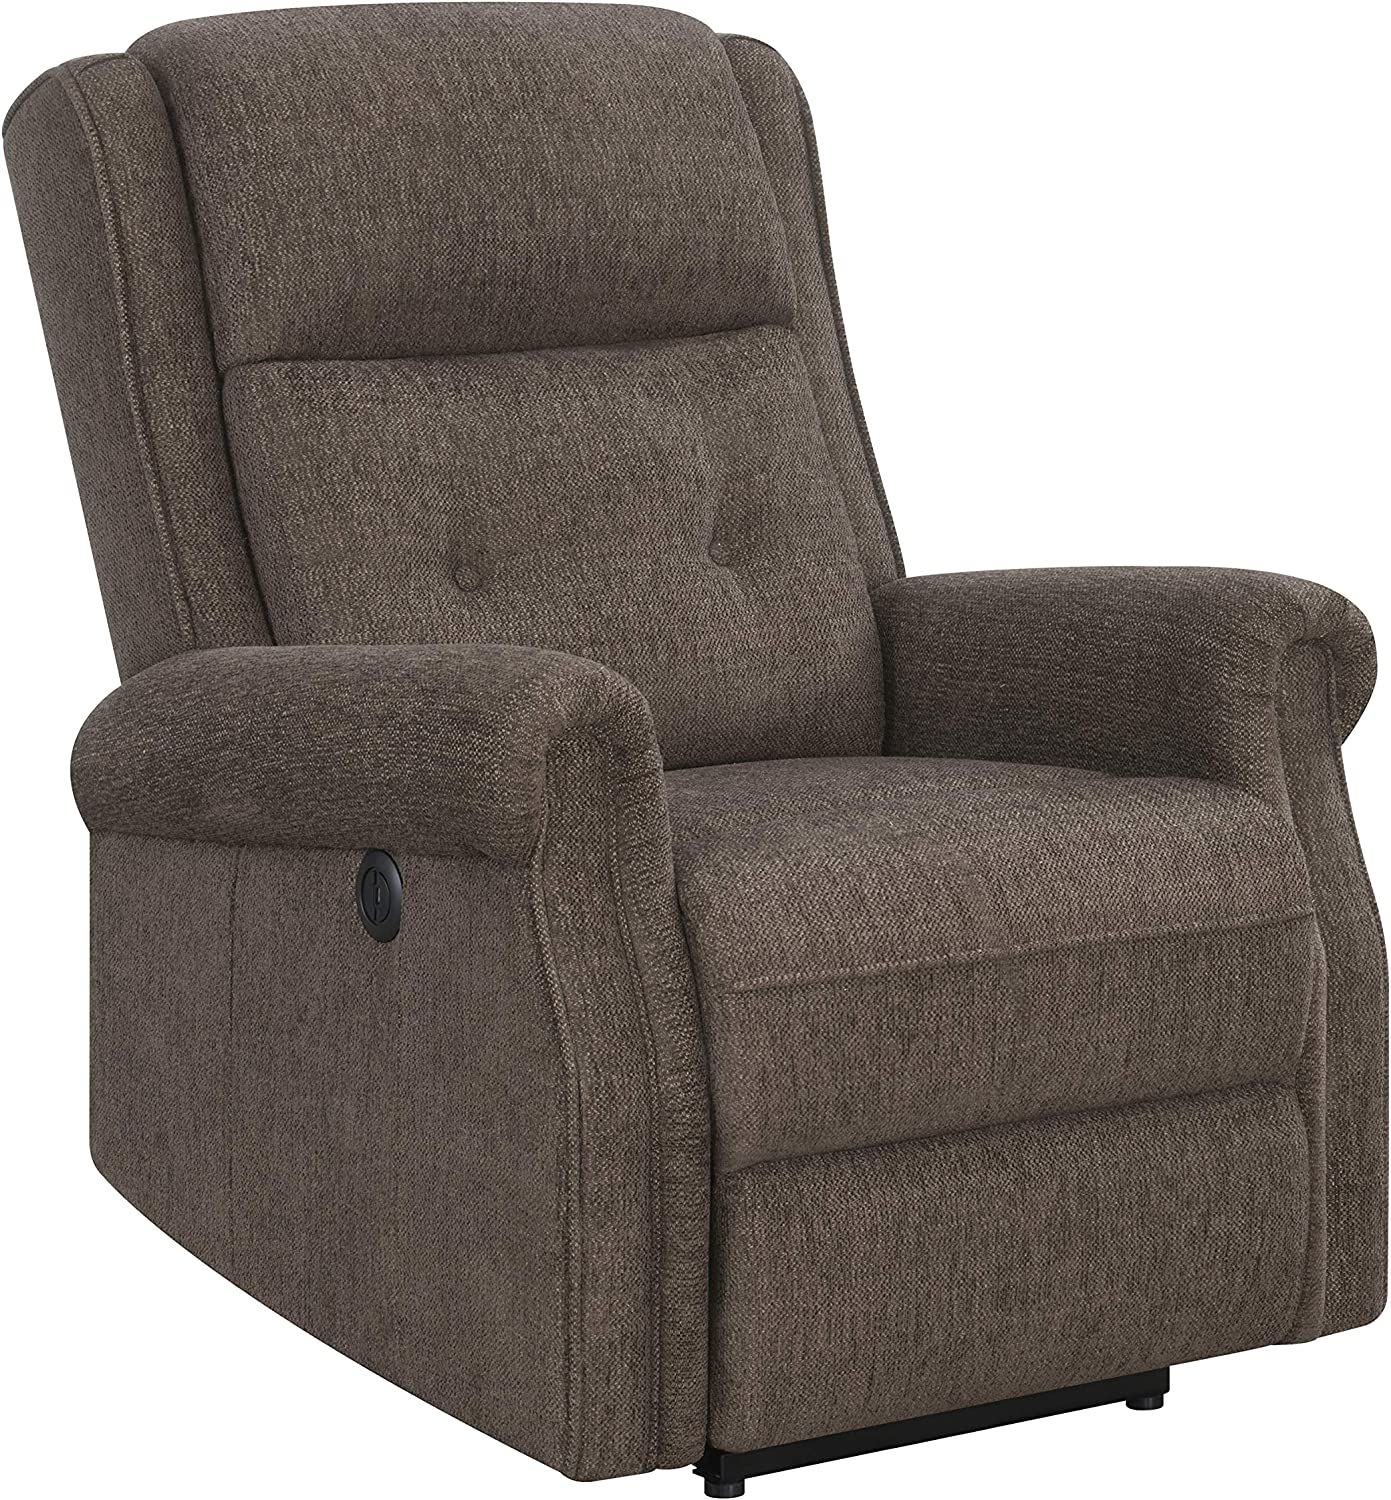 Coaster Home Furnishings Round Arm Brown Power Recliner